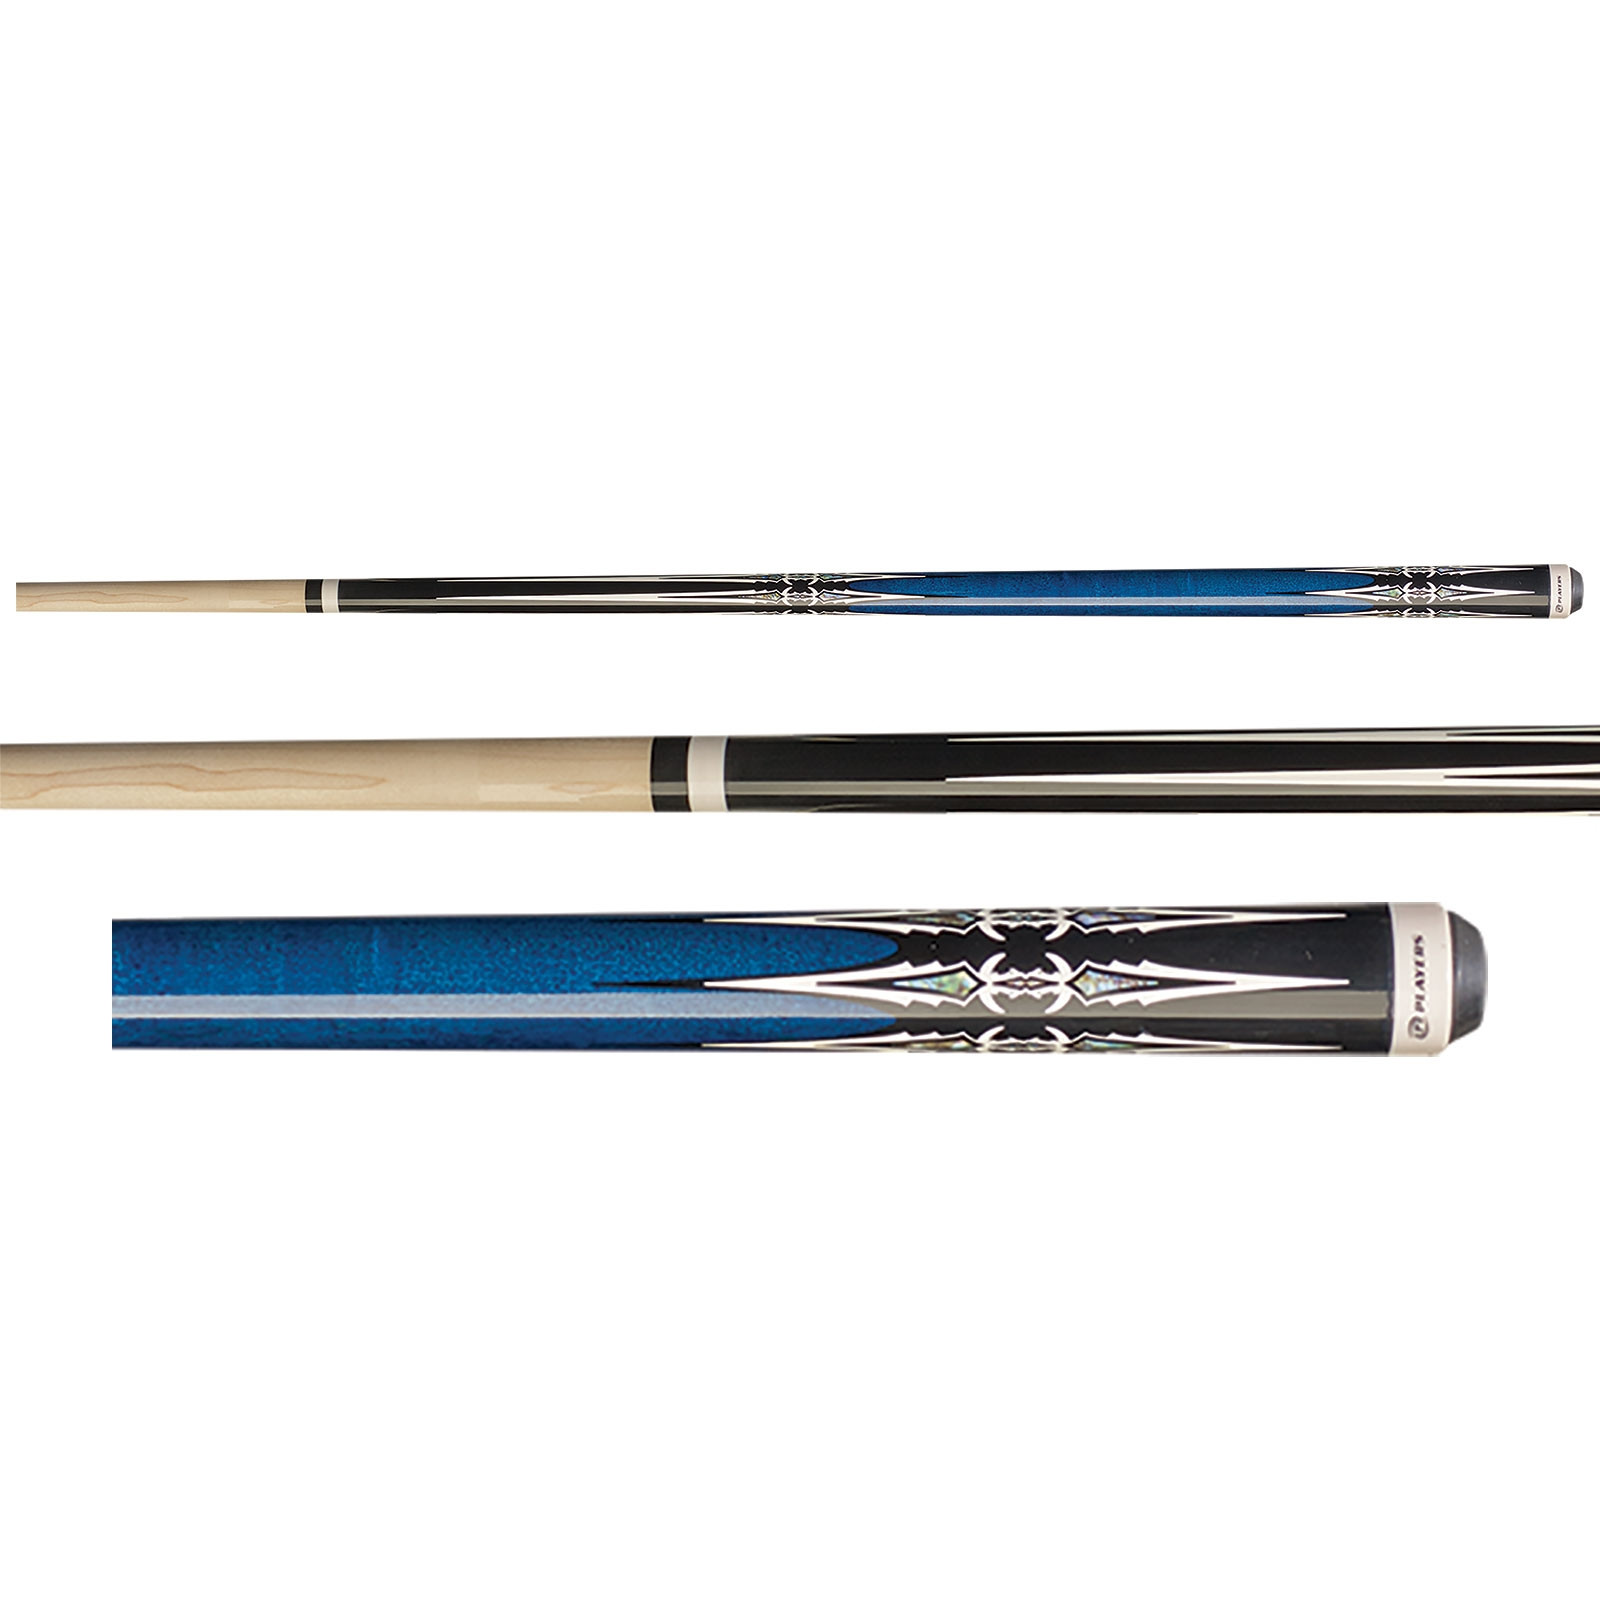 Players G-4113 Cobalt Blue Pool Cue Stick